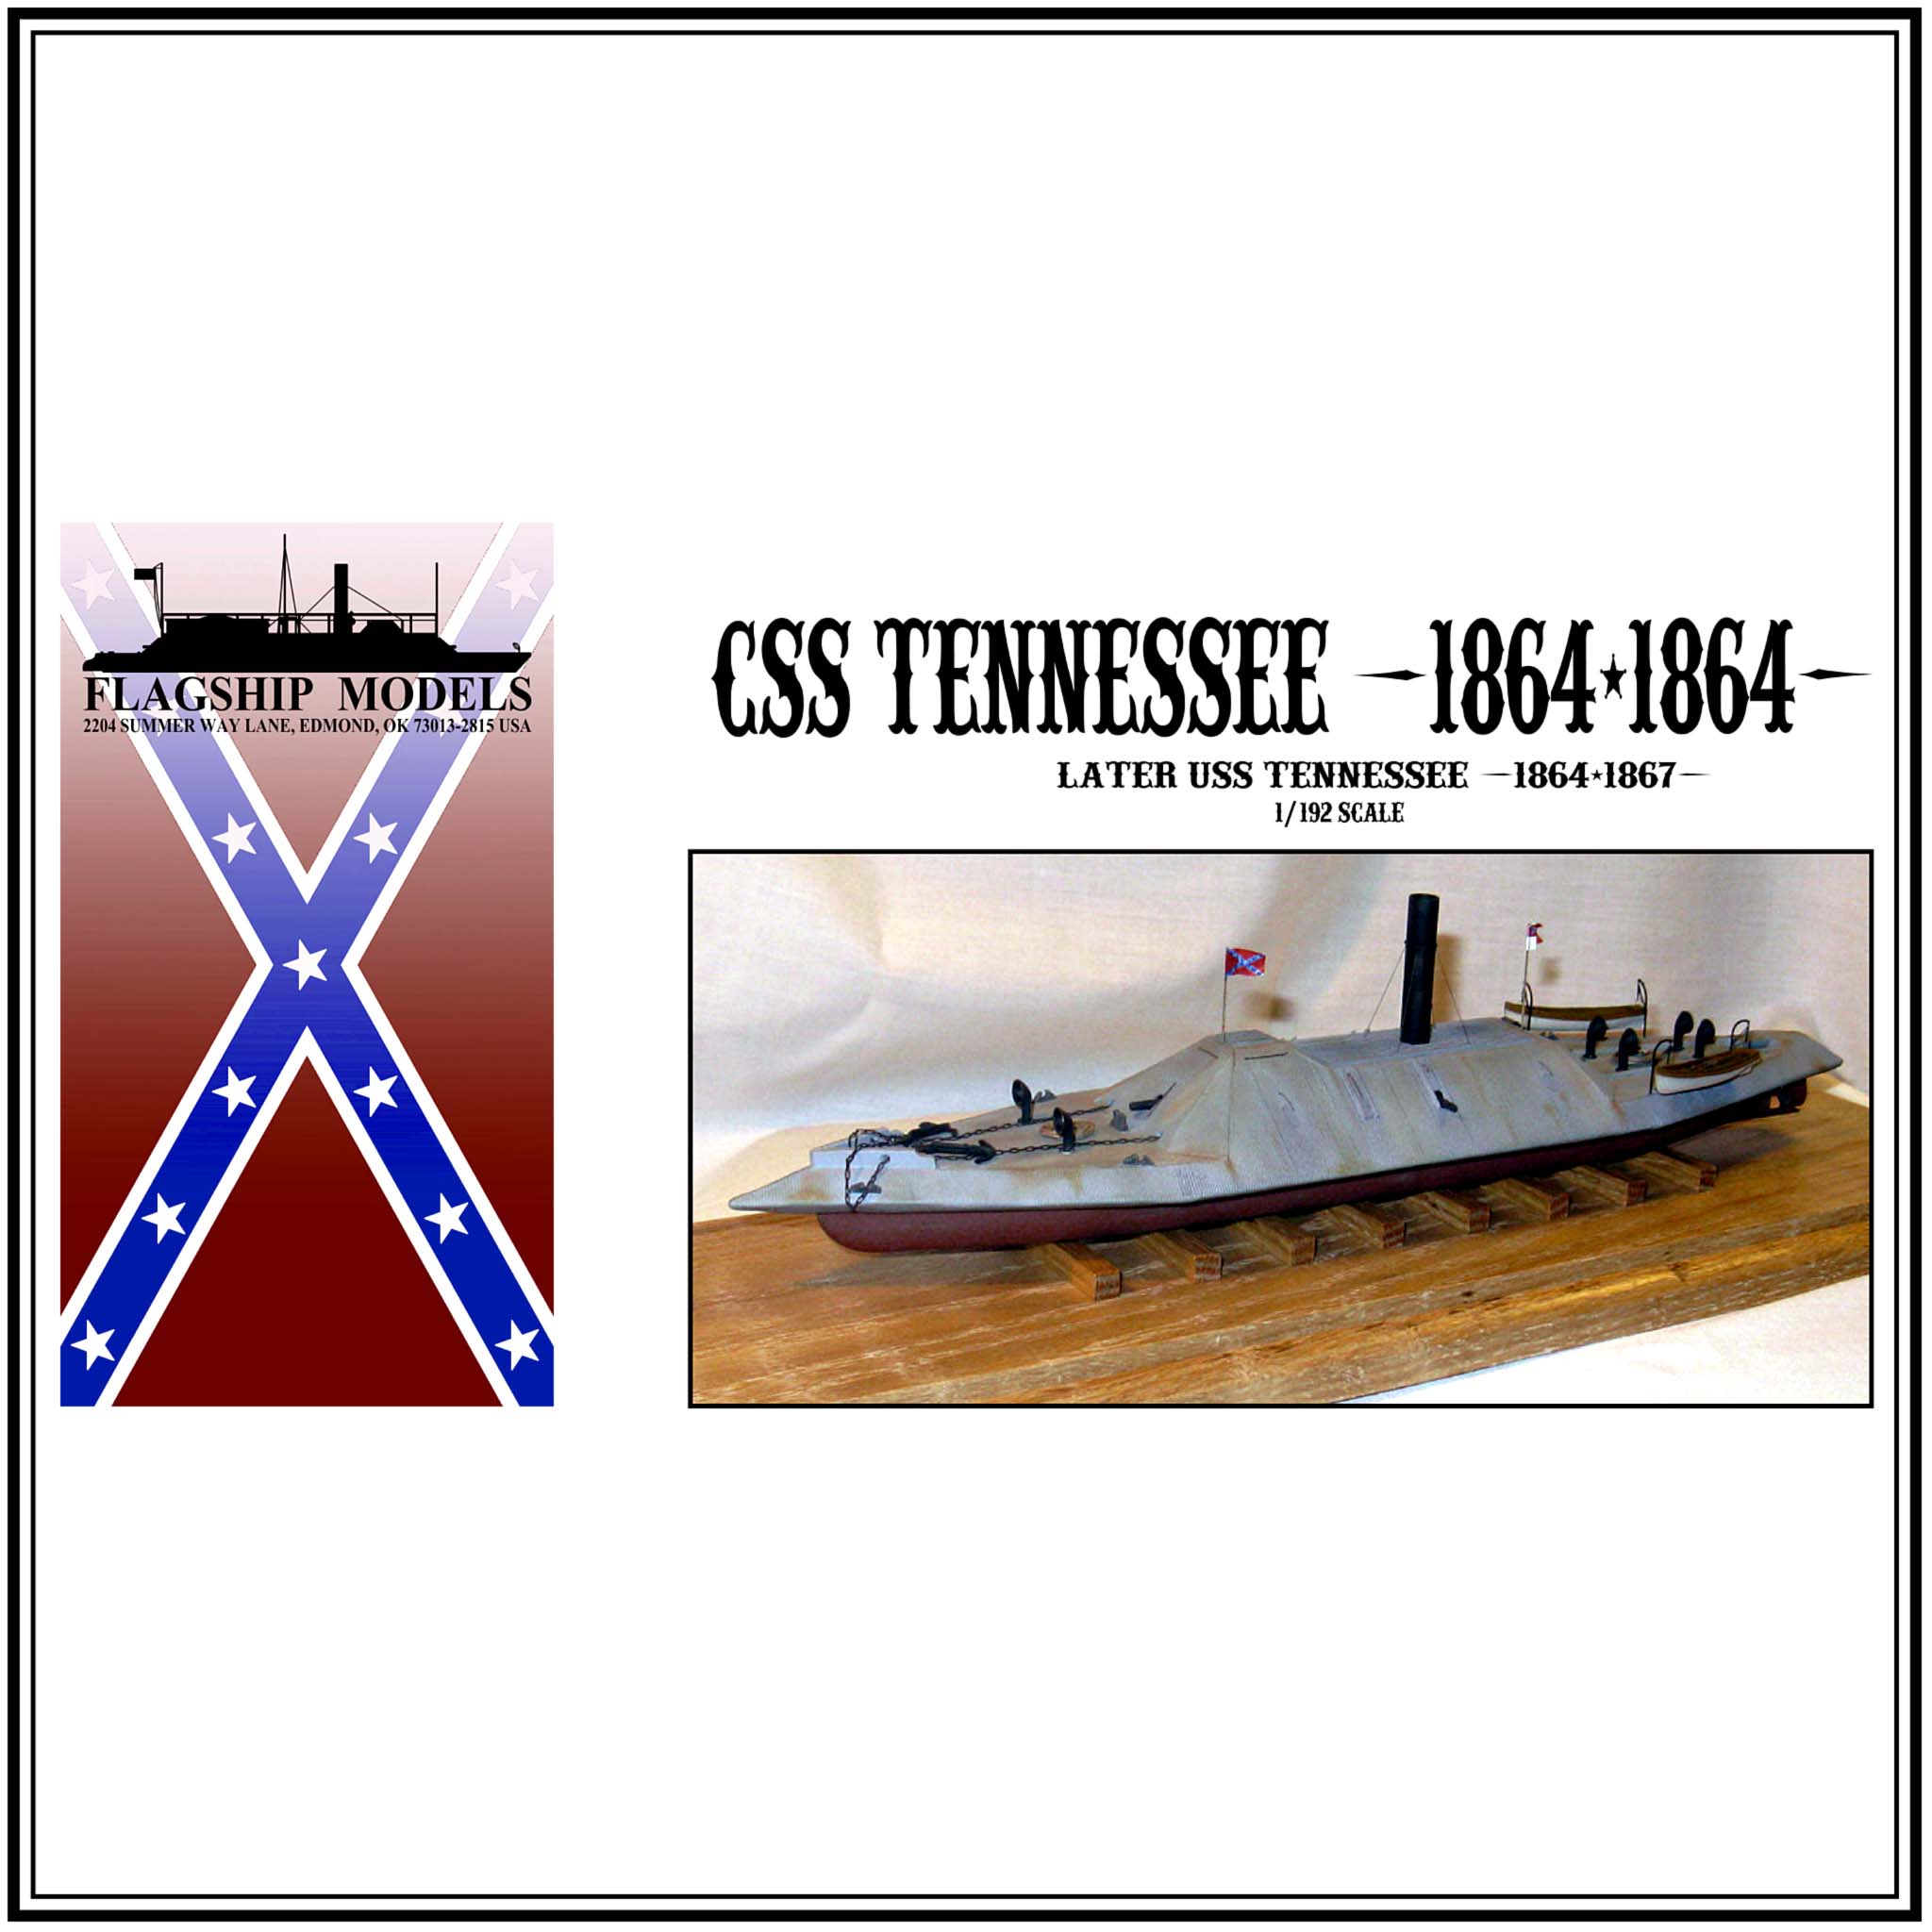 "CSS/USS TENNESSEE ironclad ram (14"" long, detail set incl.)"